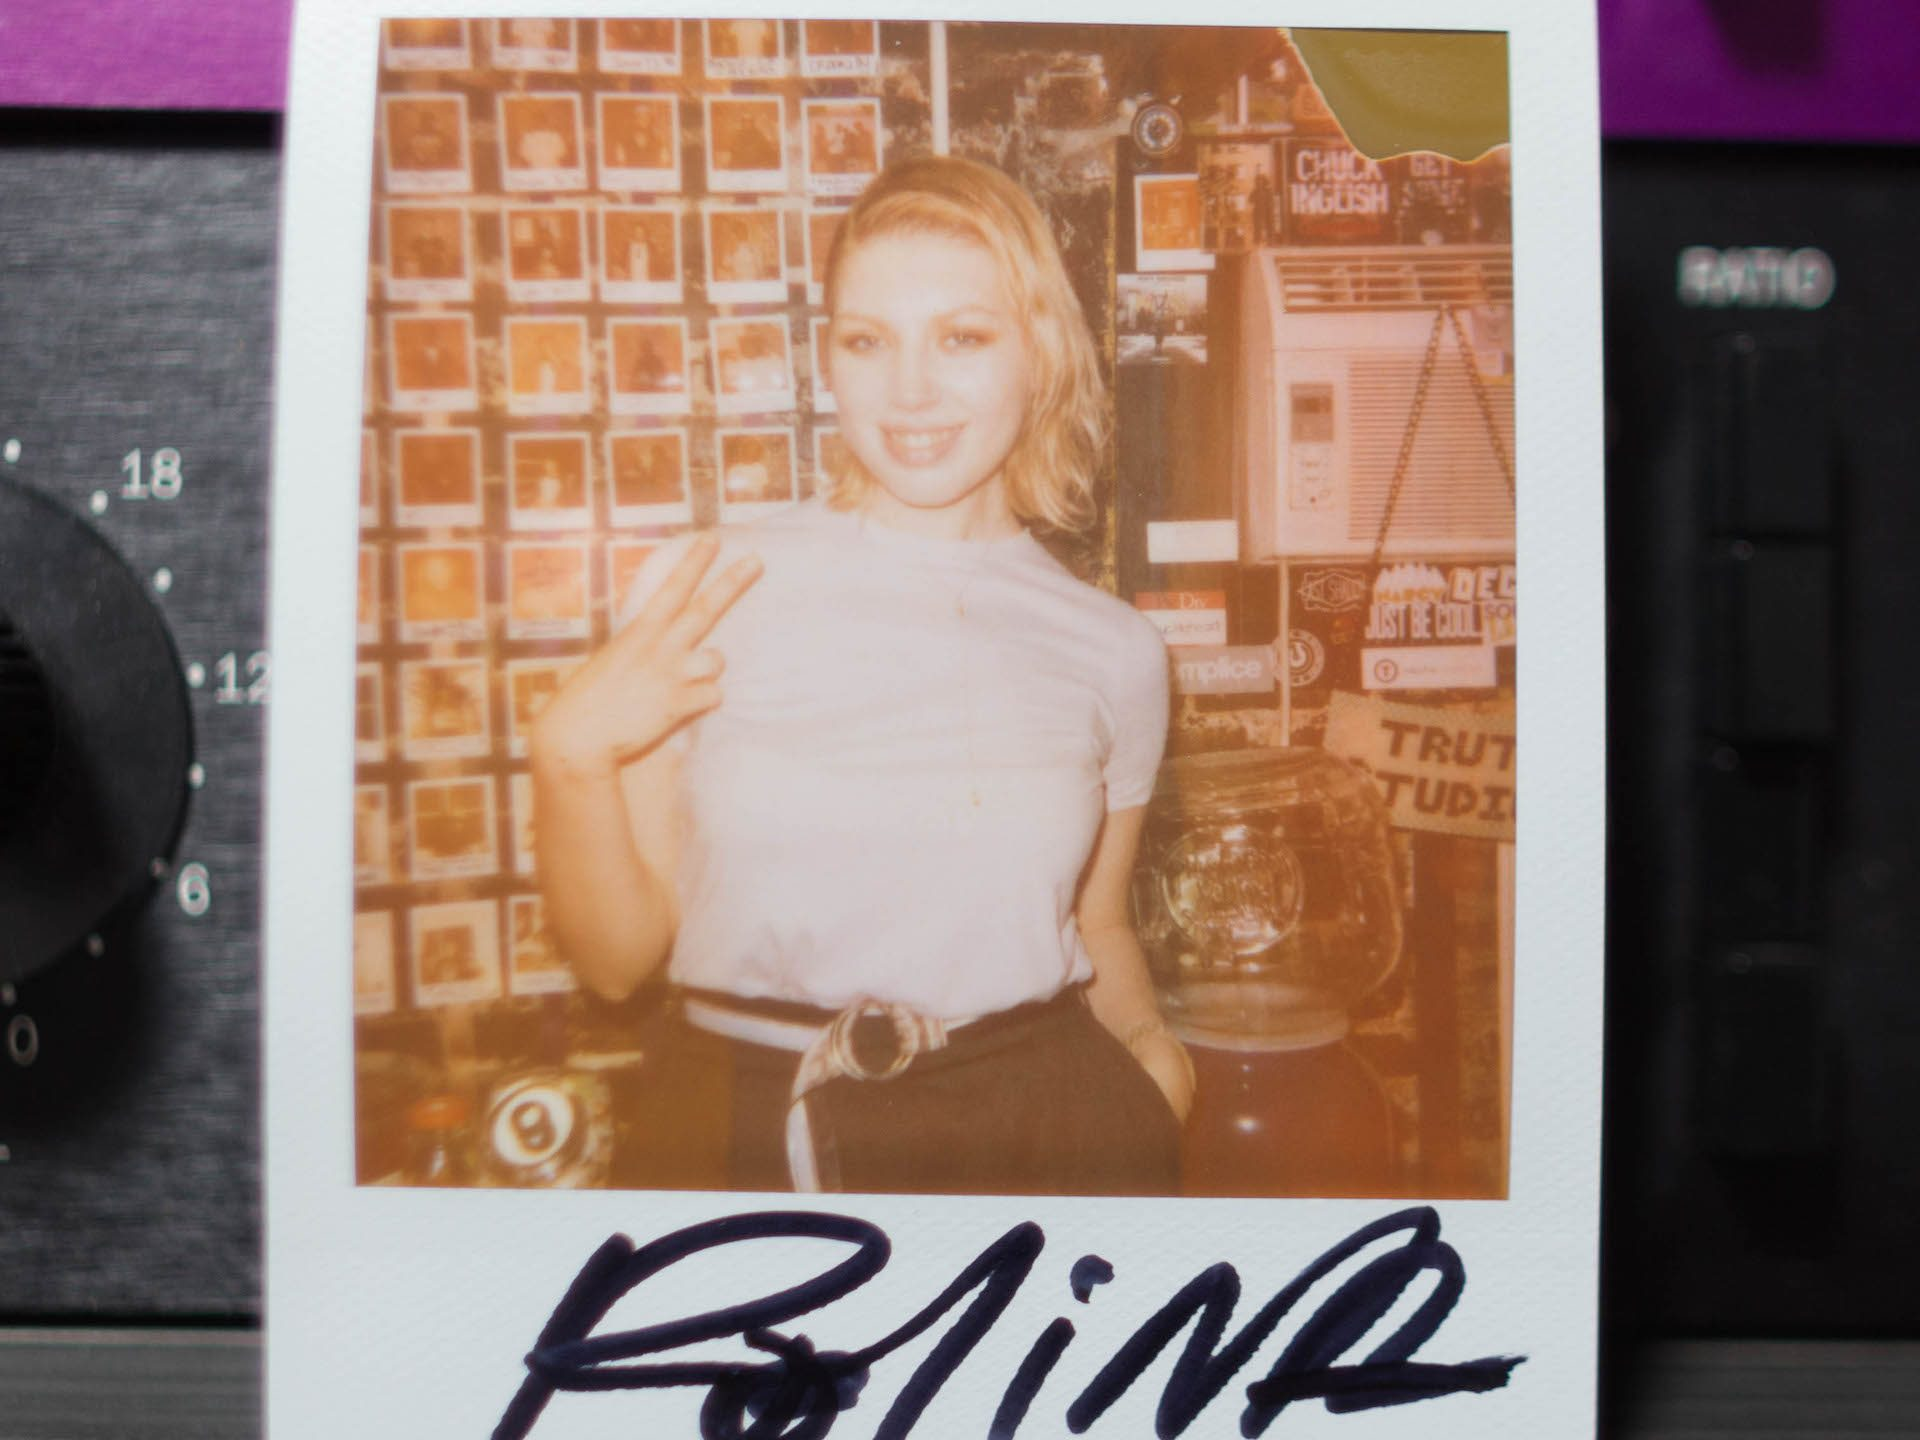 Polina Recording Session Polaroid-Truth Studios-LifeofNickB-20